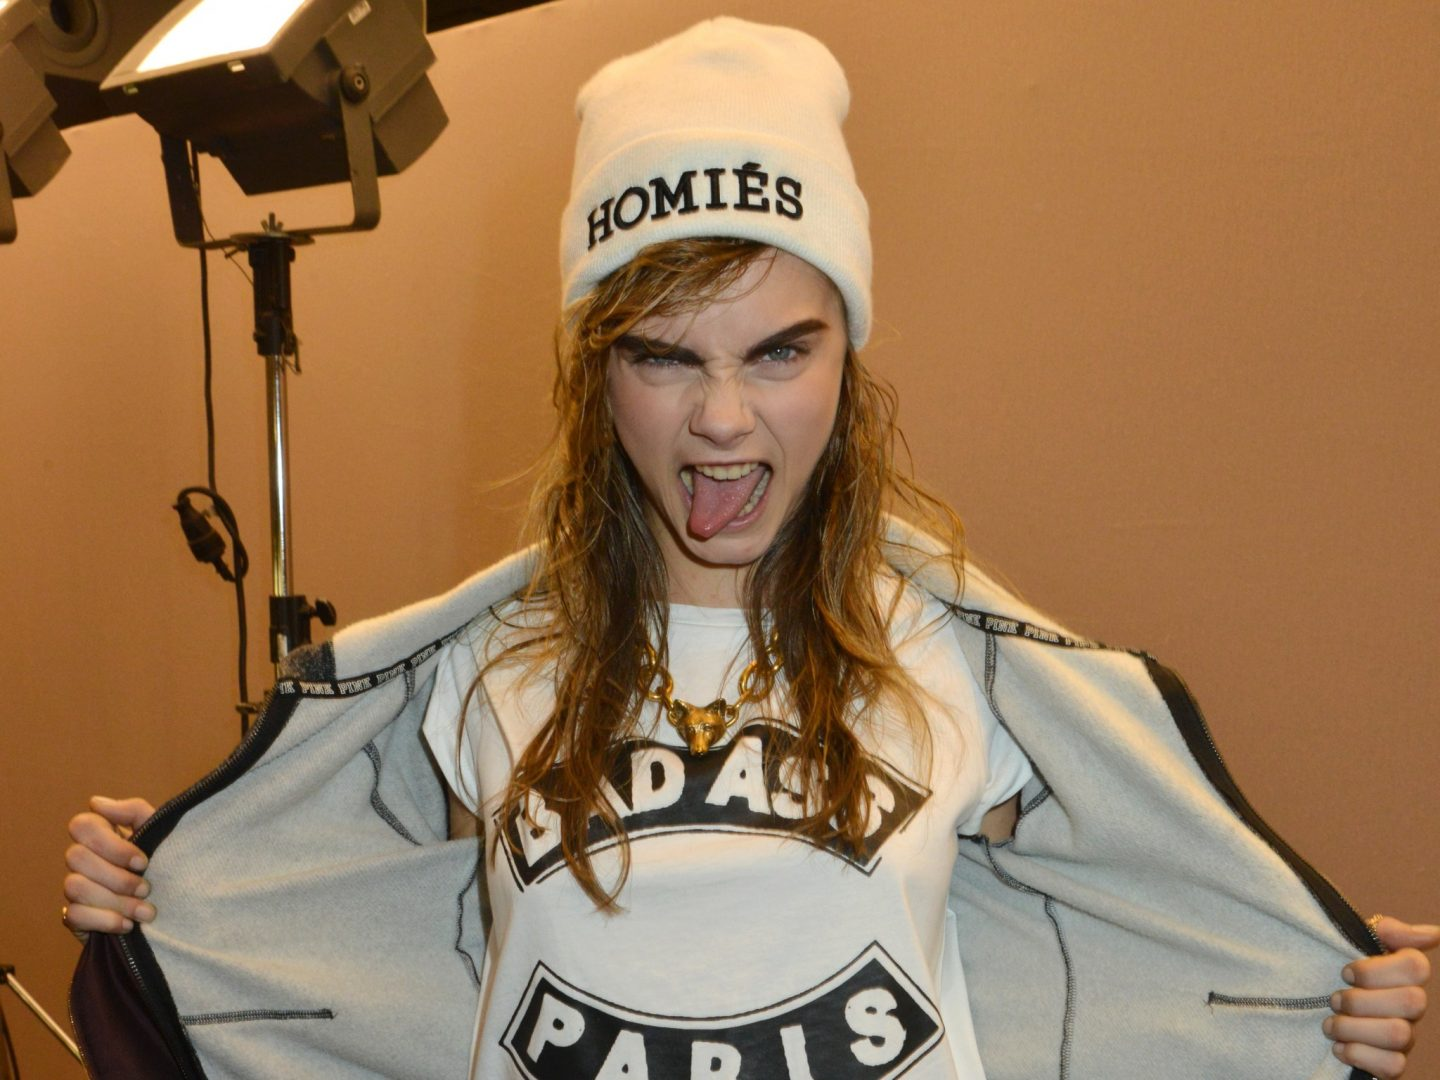 Cara Delevingne would die for her friends and lovers